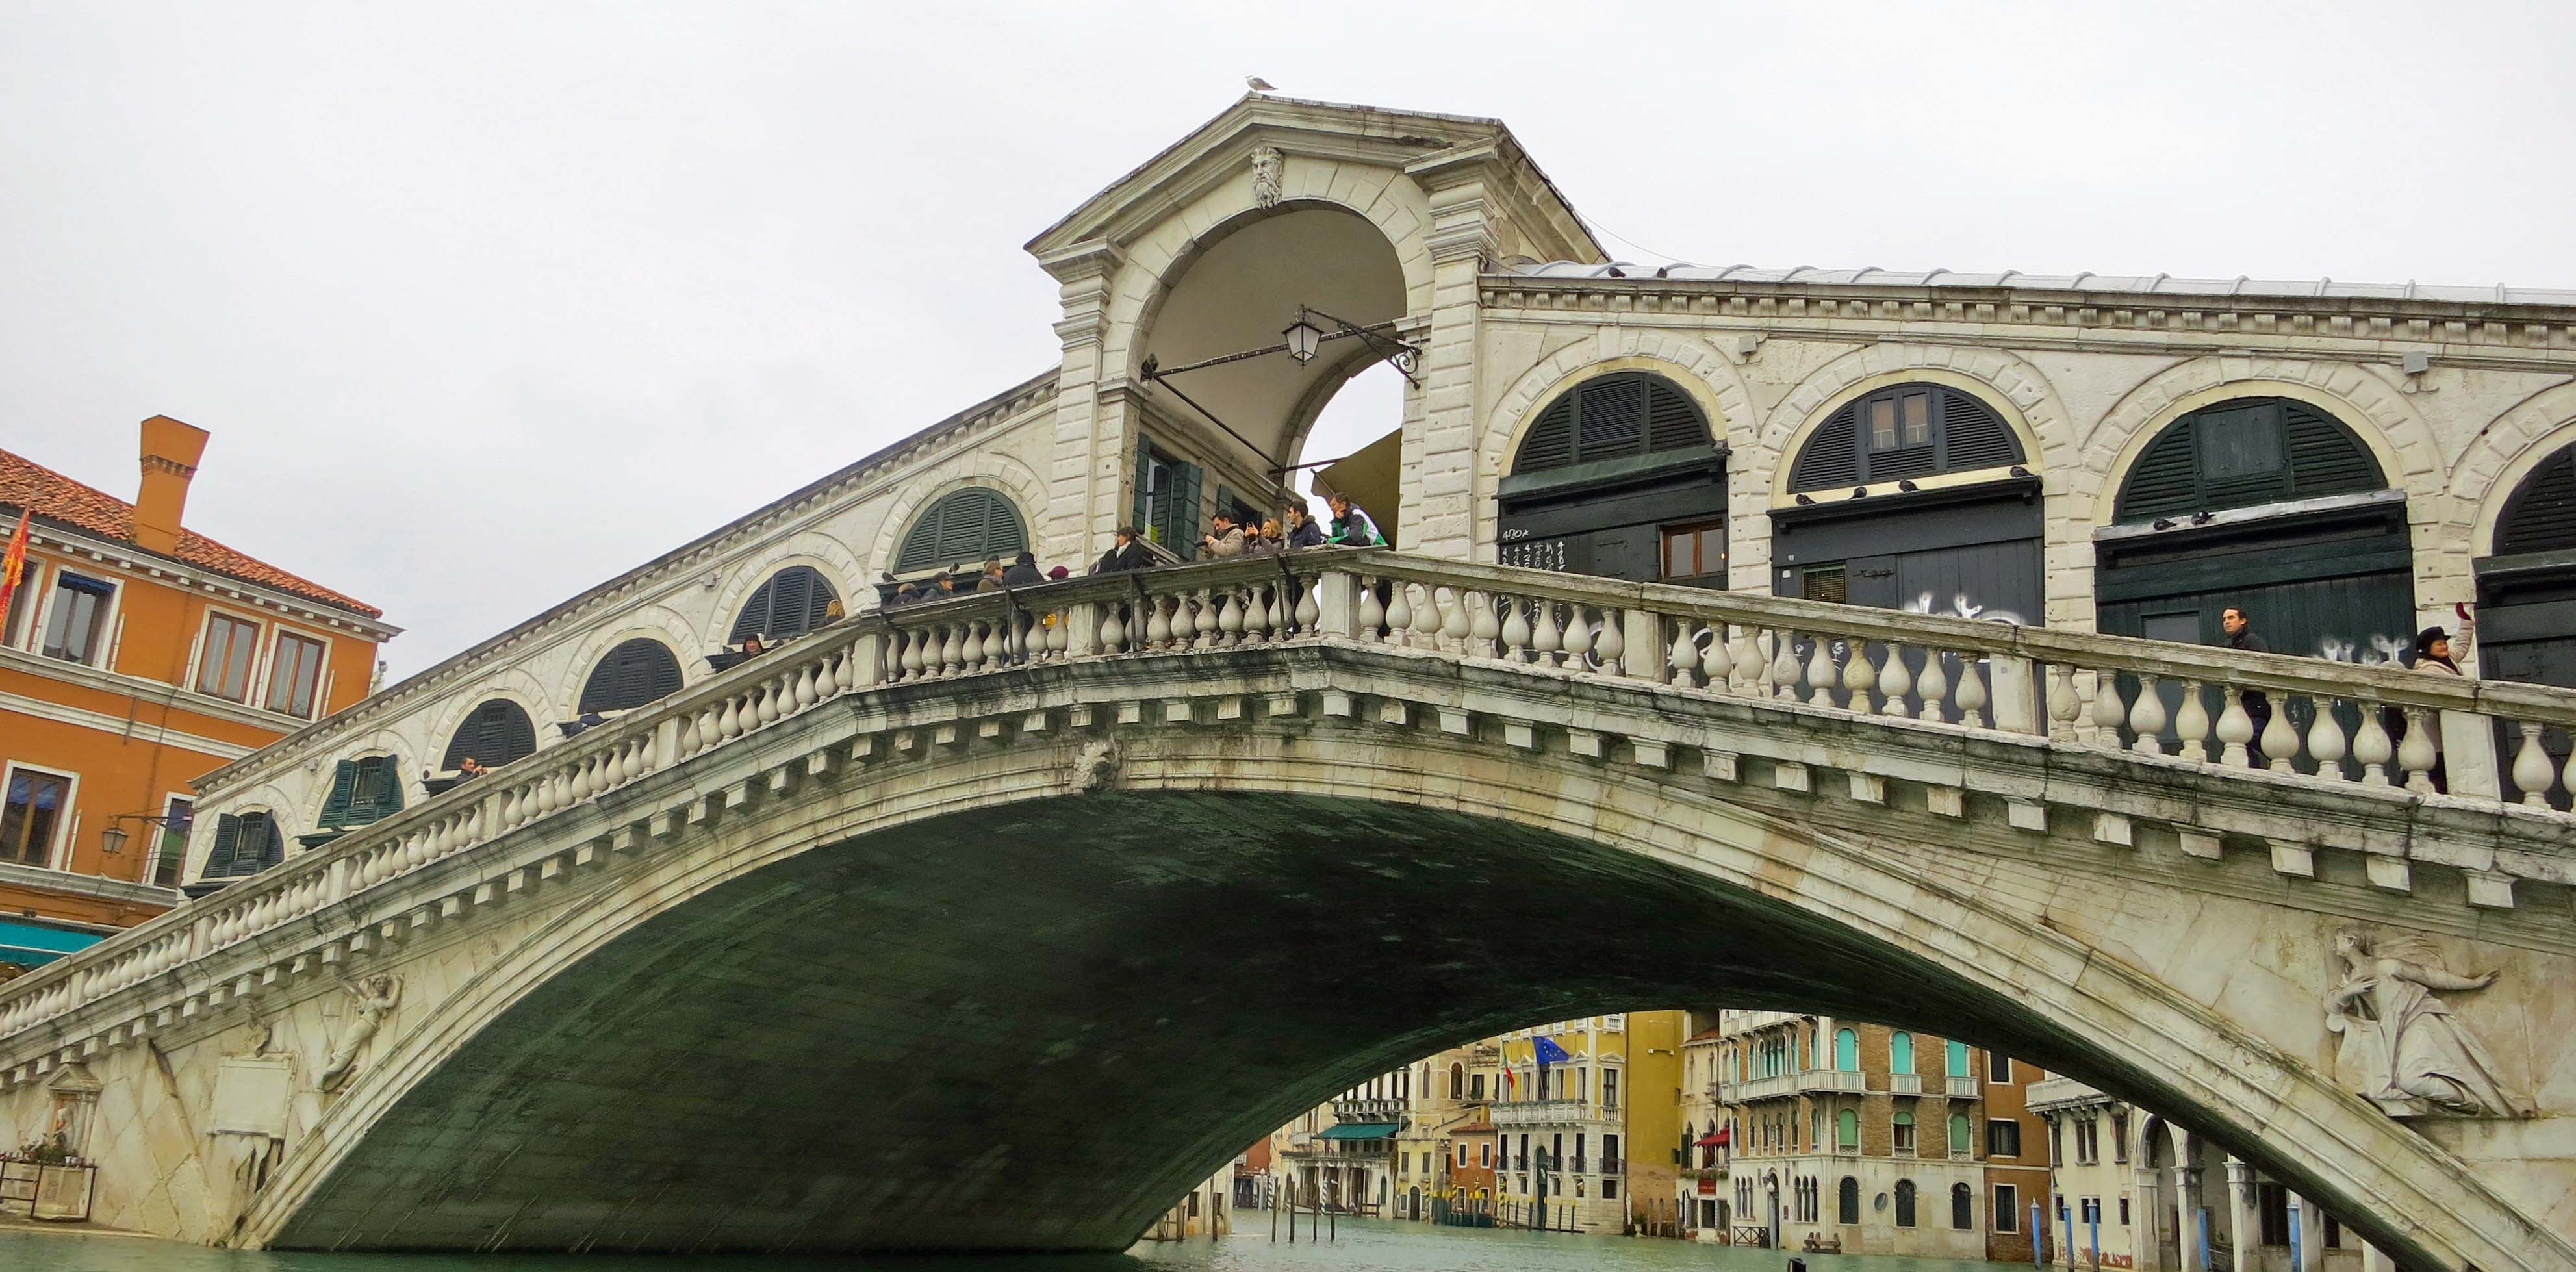 This photo shows the famed Rialto Bridge that served for centuries as the only bridge across the Grand Canal, which snakes its way through Venice as the major transportation corridor.